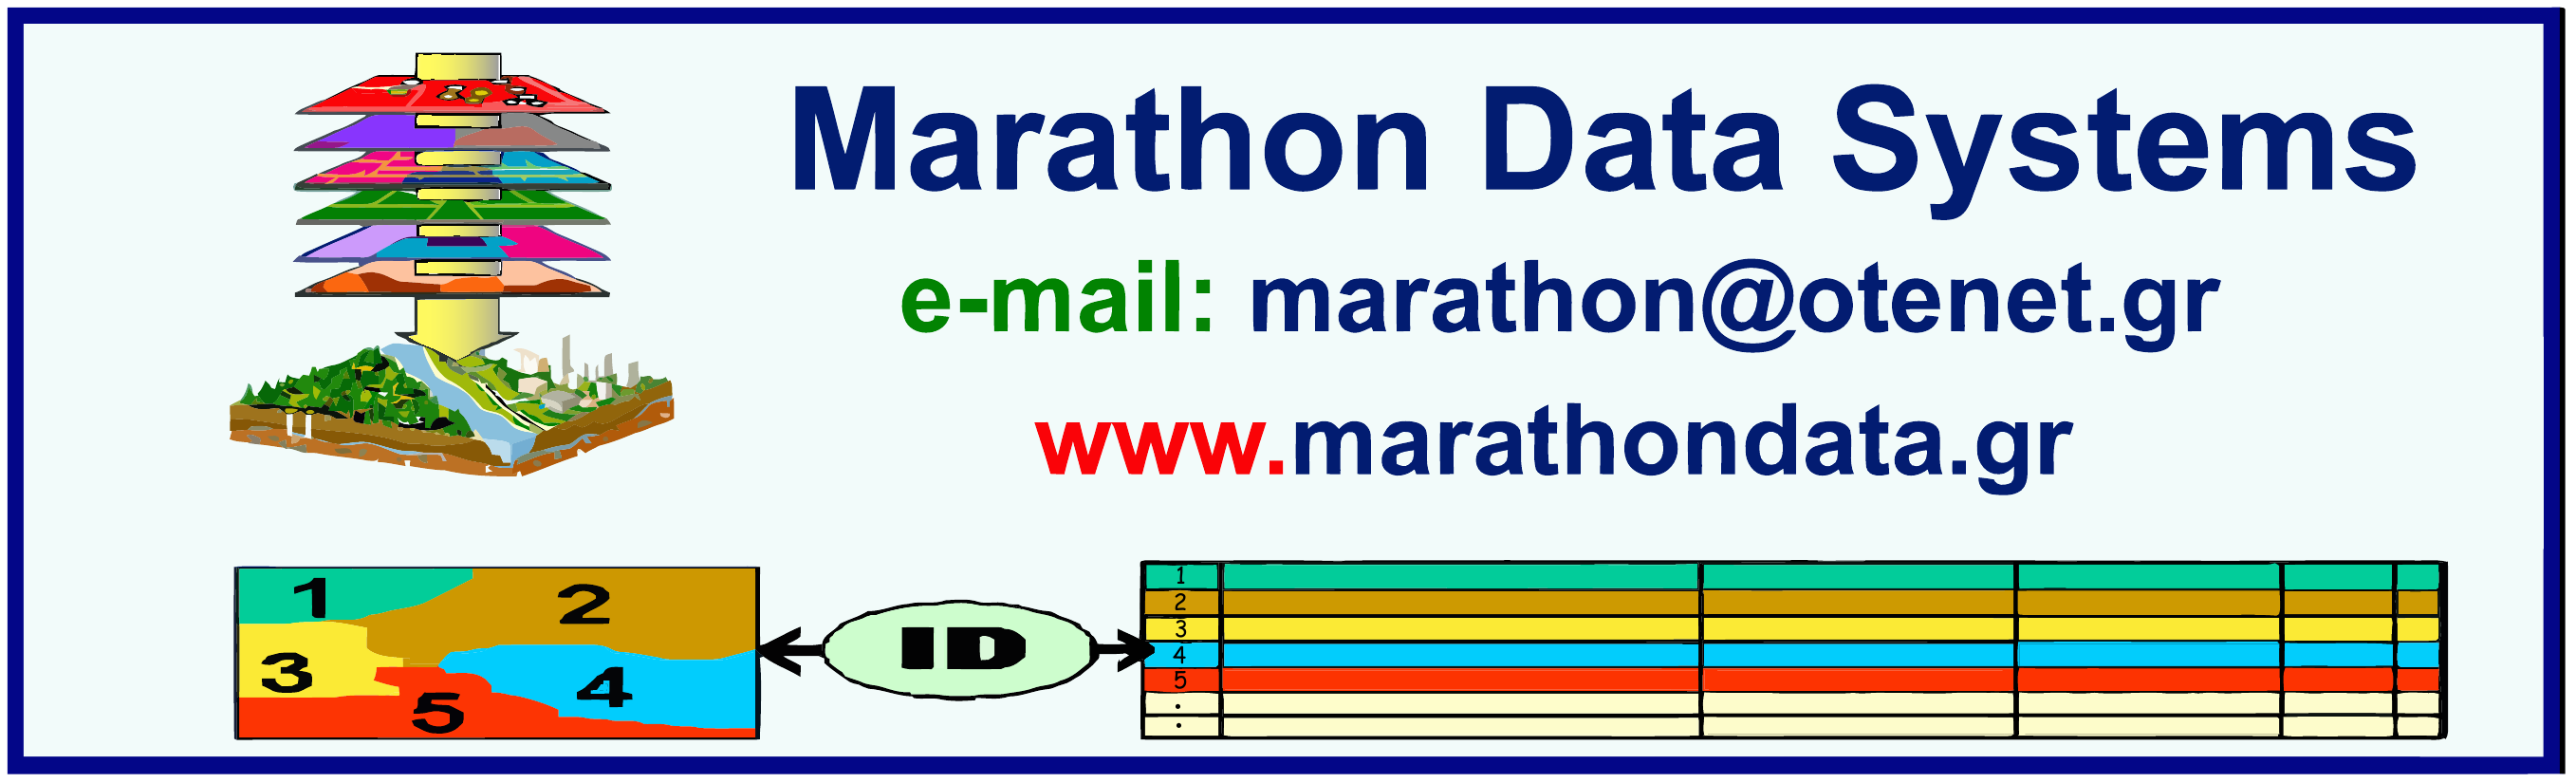 Marathon Data Systems logo